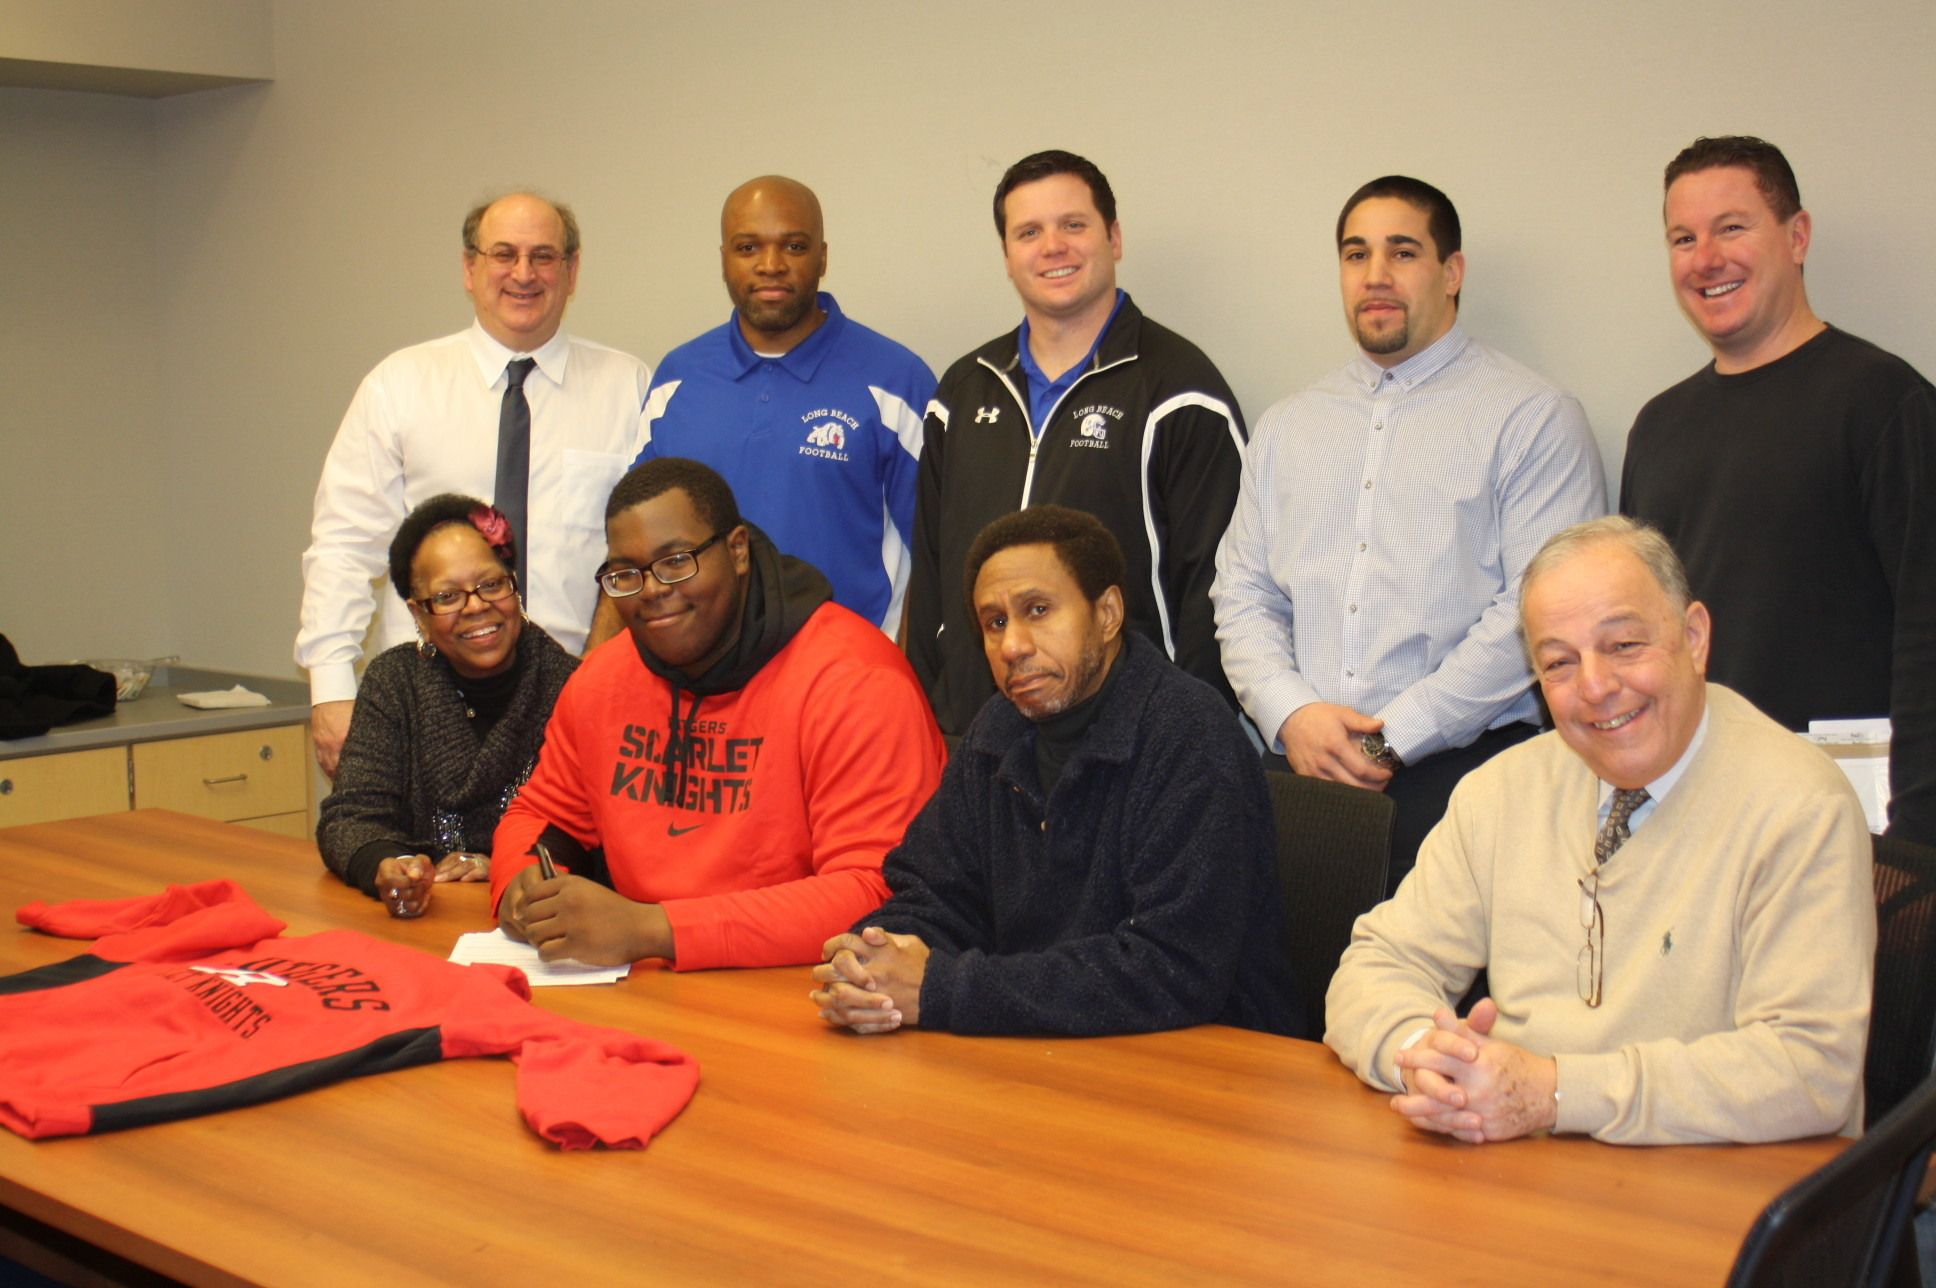 Long Beach High School senior Tariq Cole, seated second from left, signed a letter of intent to play college football at Rutgers University. He was joined by his parents, Queen, far left, and Hunter, second from right, along with District Director of Athletics Arnold Epstein, clockwise from top left, assistant coach Ian Butler, head coach Scott Martin, volunteer coach Rocco Tenebruso, guidance counselor Michael Vitale, and Interim Principal Neil Lederer.